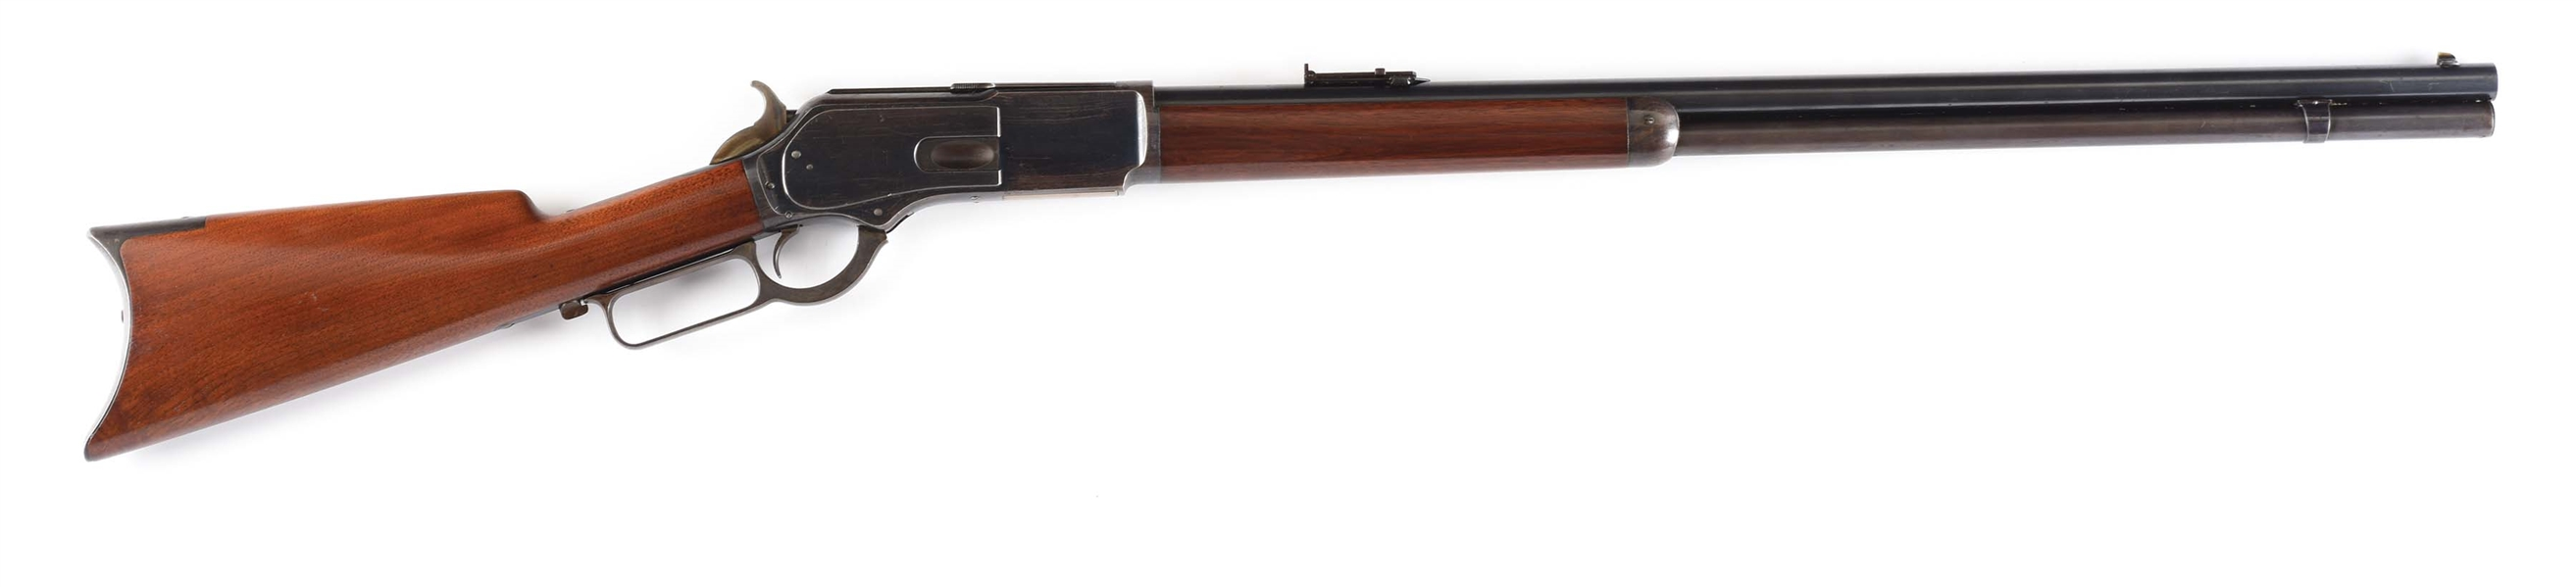 (A) SUPERB WINCHESTER 1876 LEVER ACTION RIFLE